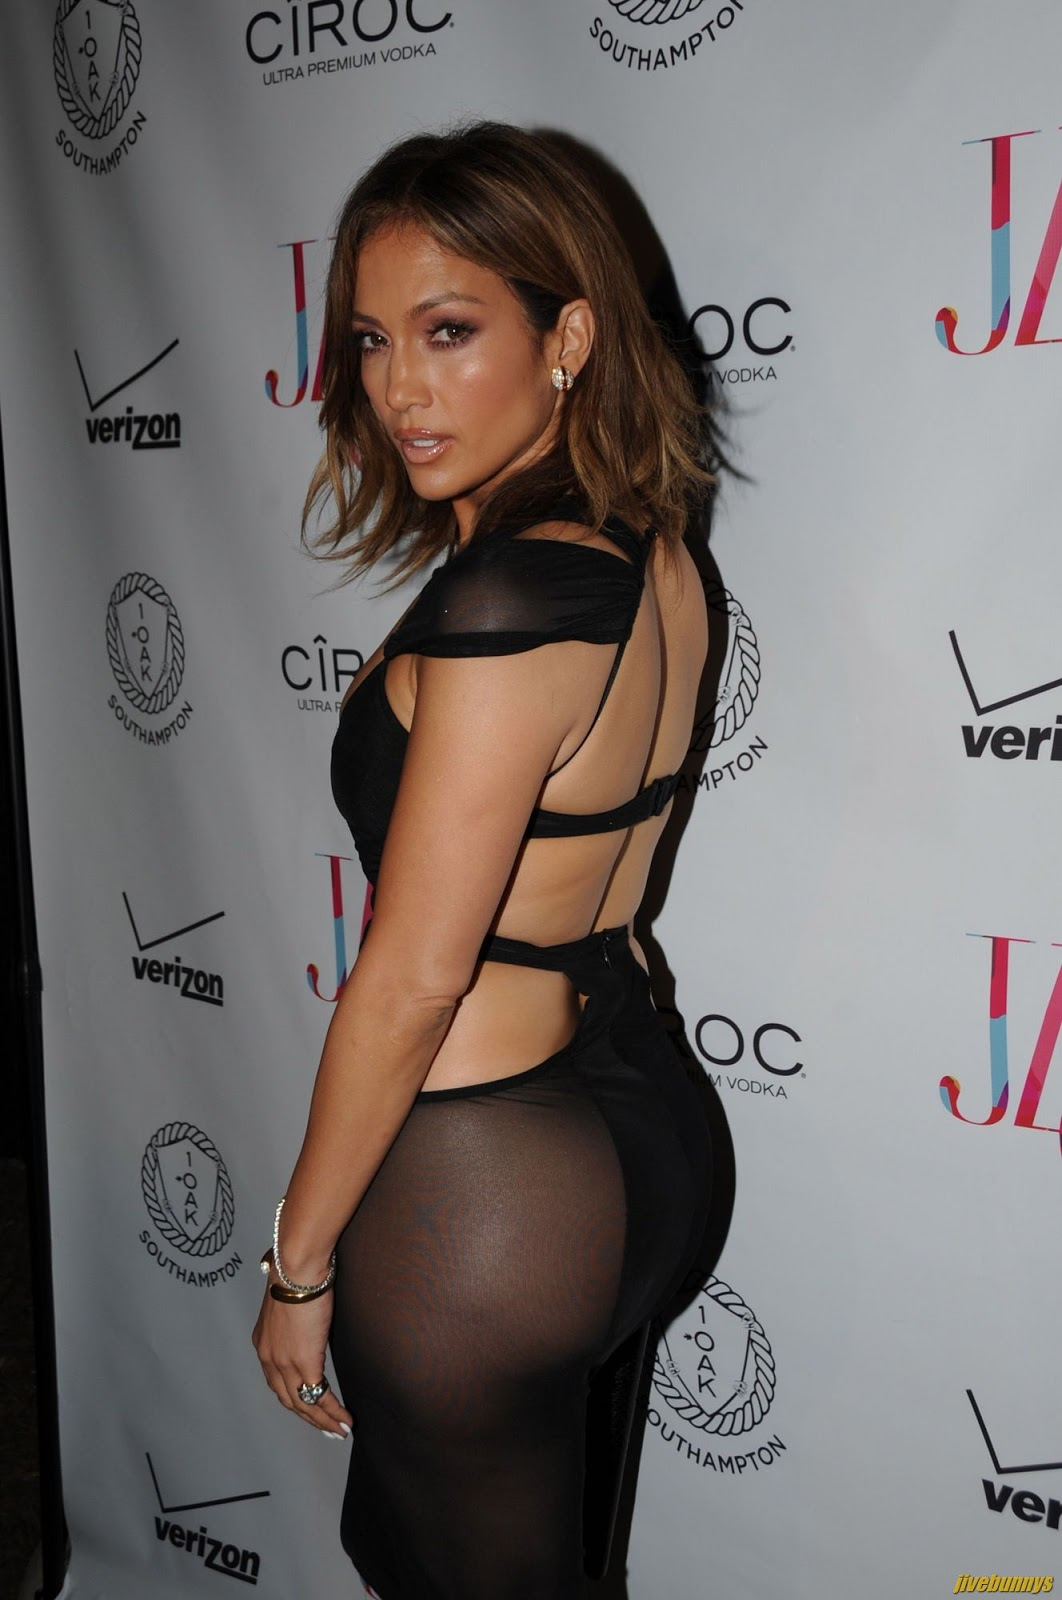 blogspotcom jennifer lopez - photo #30